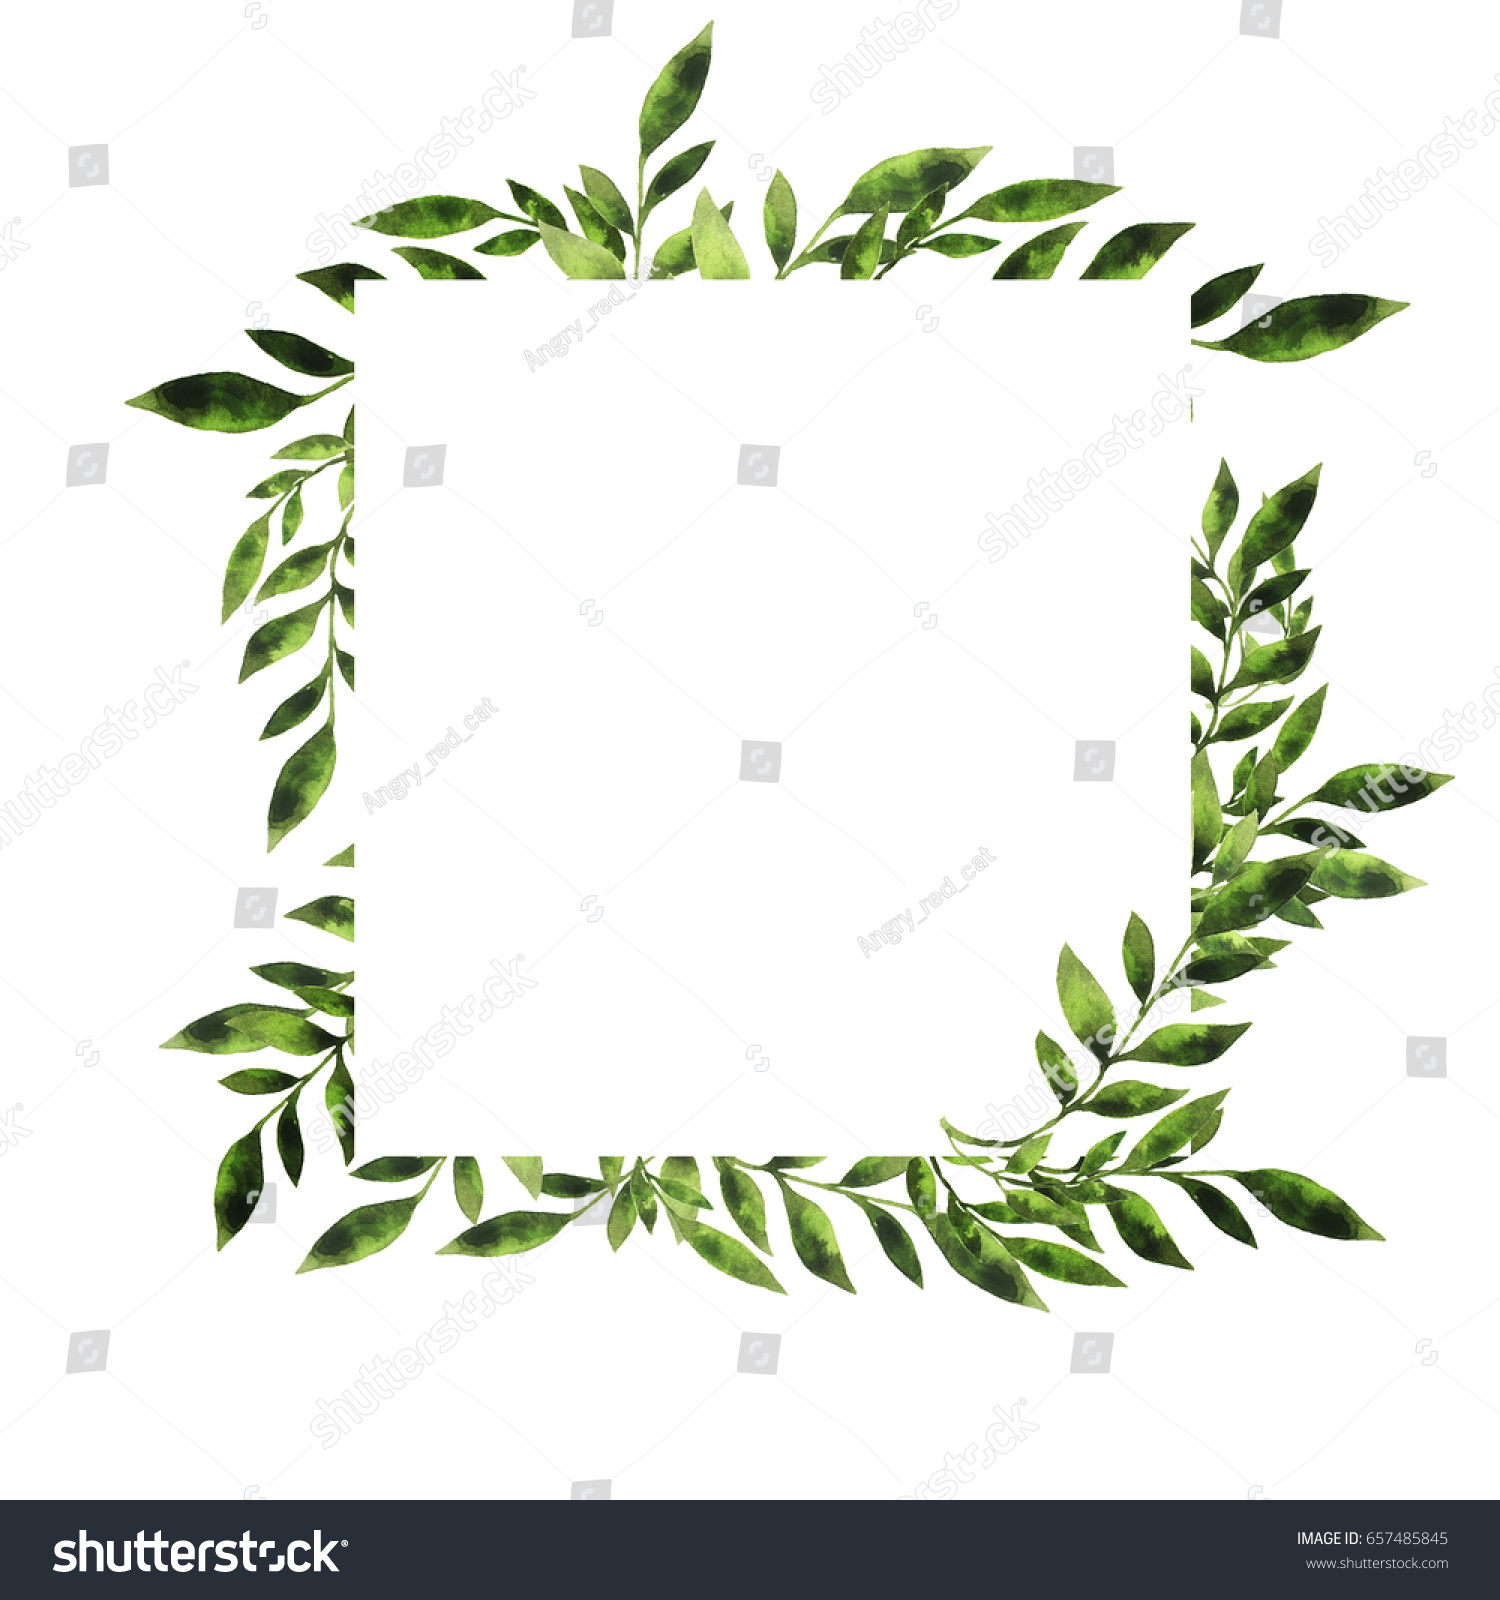 Green Leaves Branches Border Design Greeting Stock Illustration ...